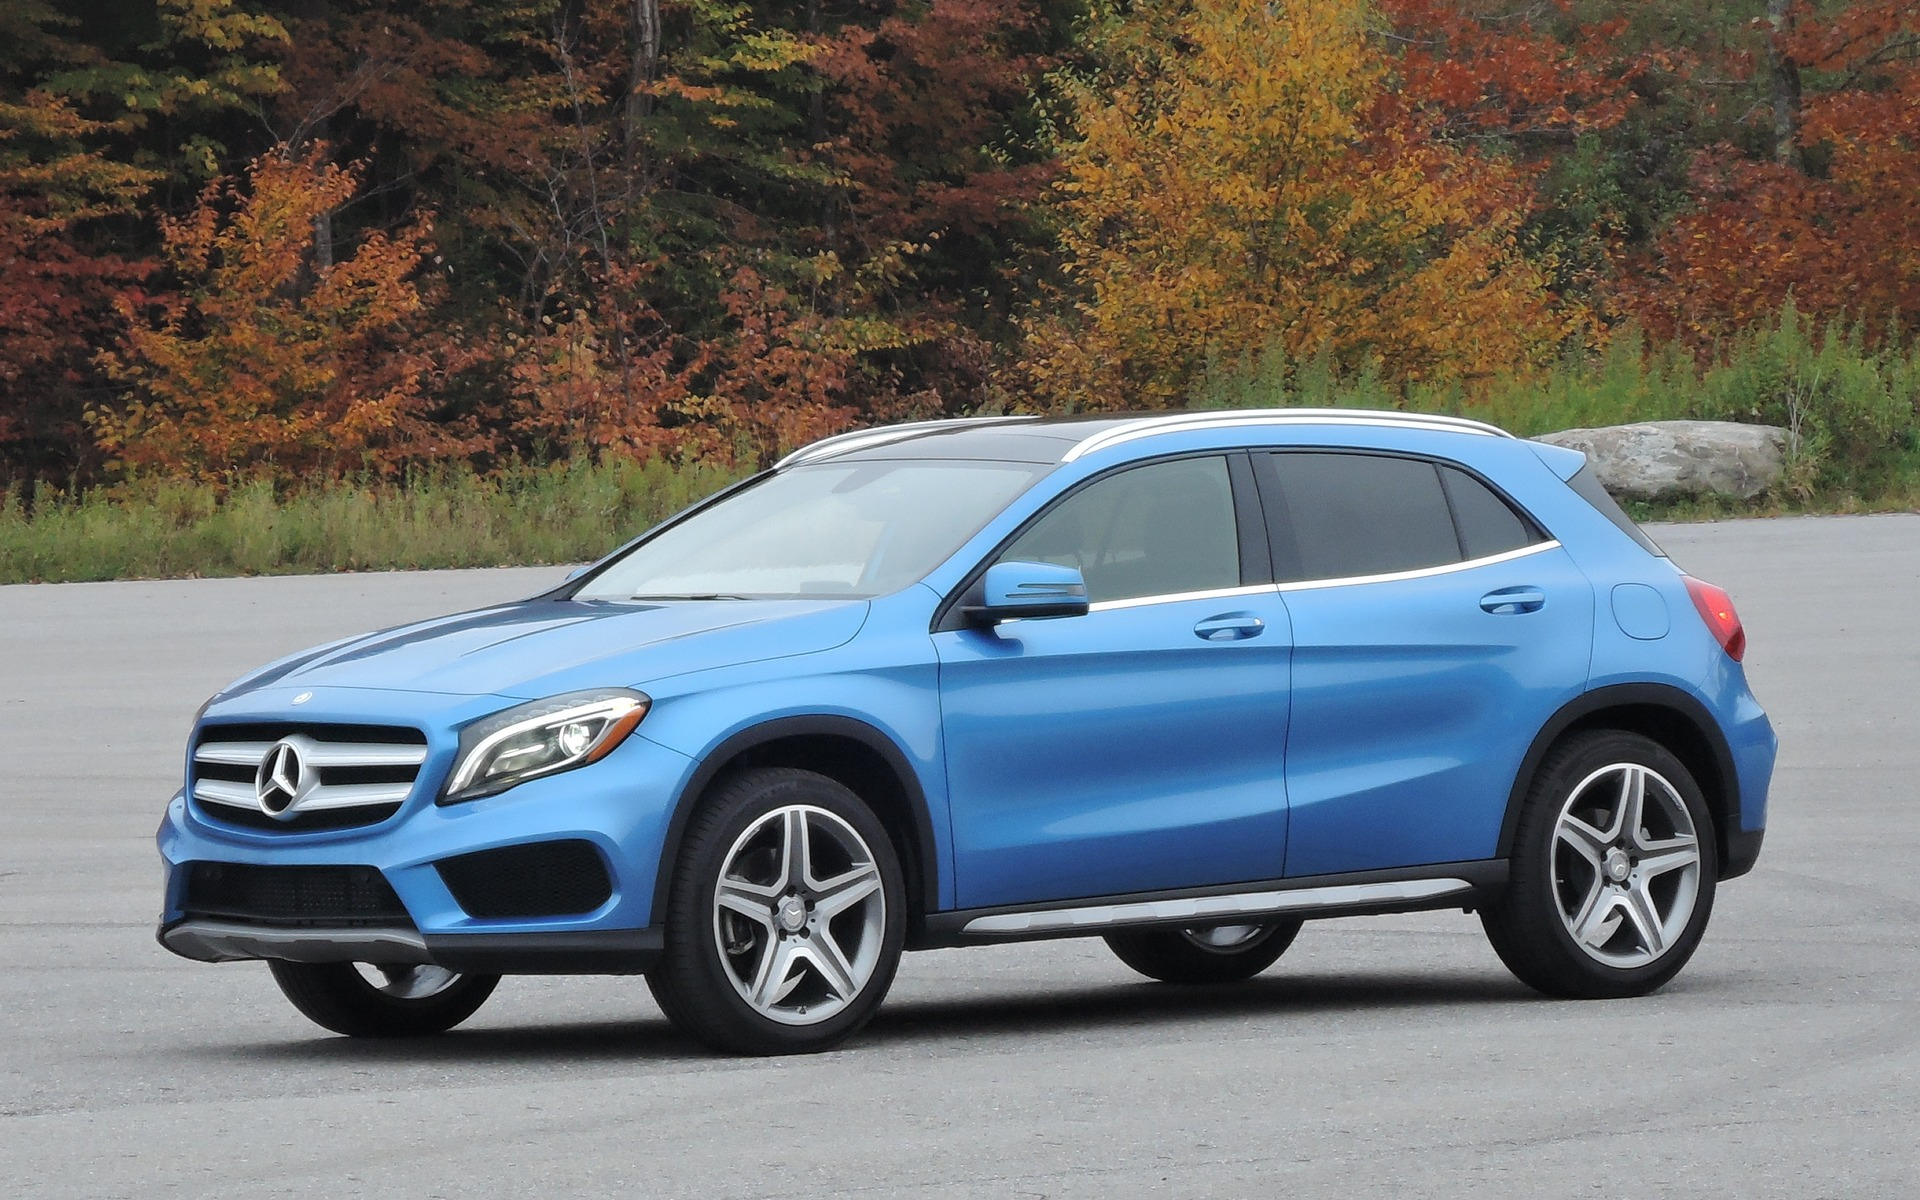 2015 Mercedes Benz Gla Practical Or Sporty 6 36